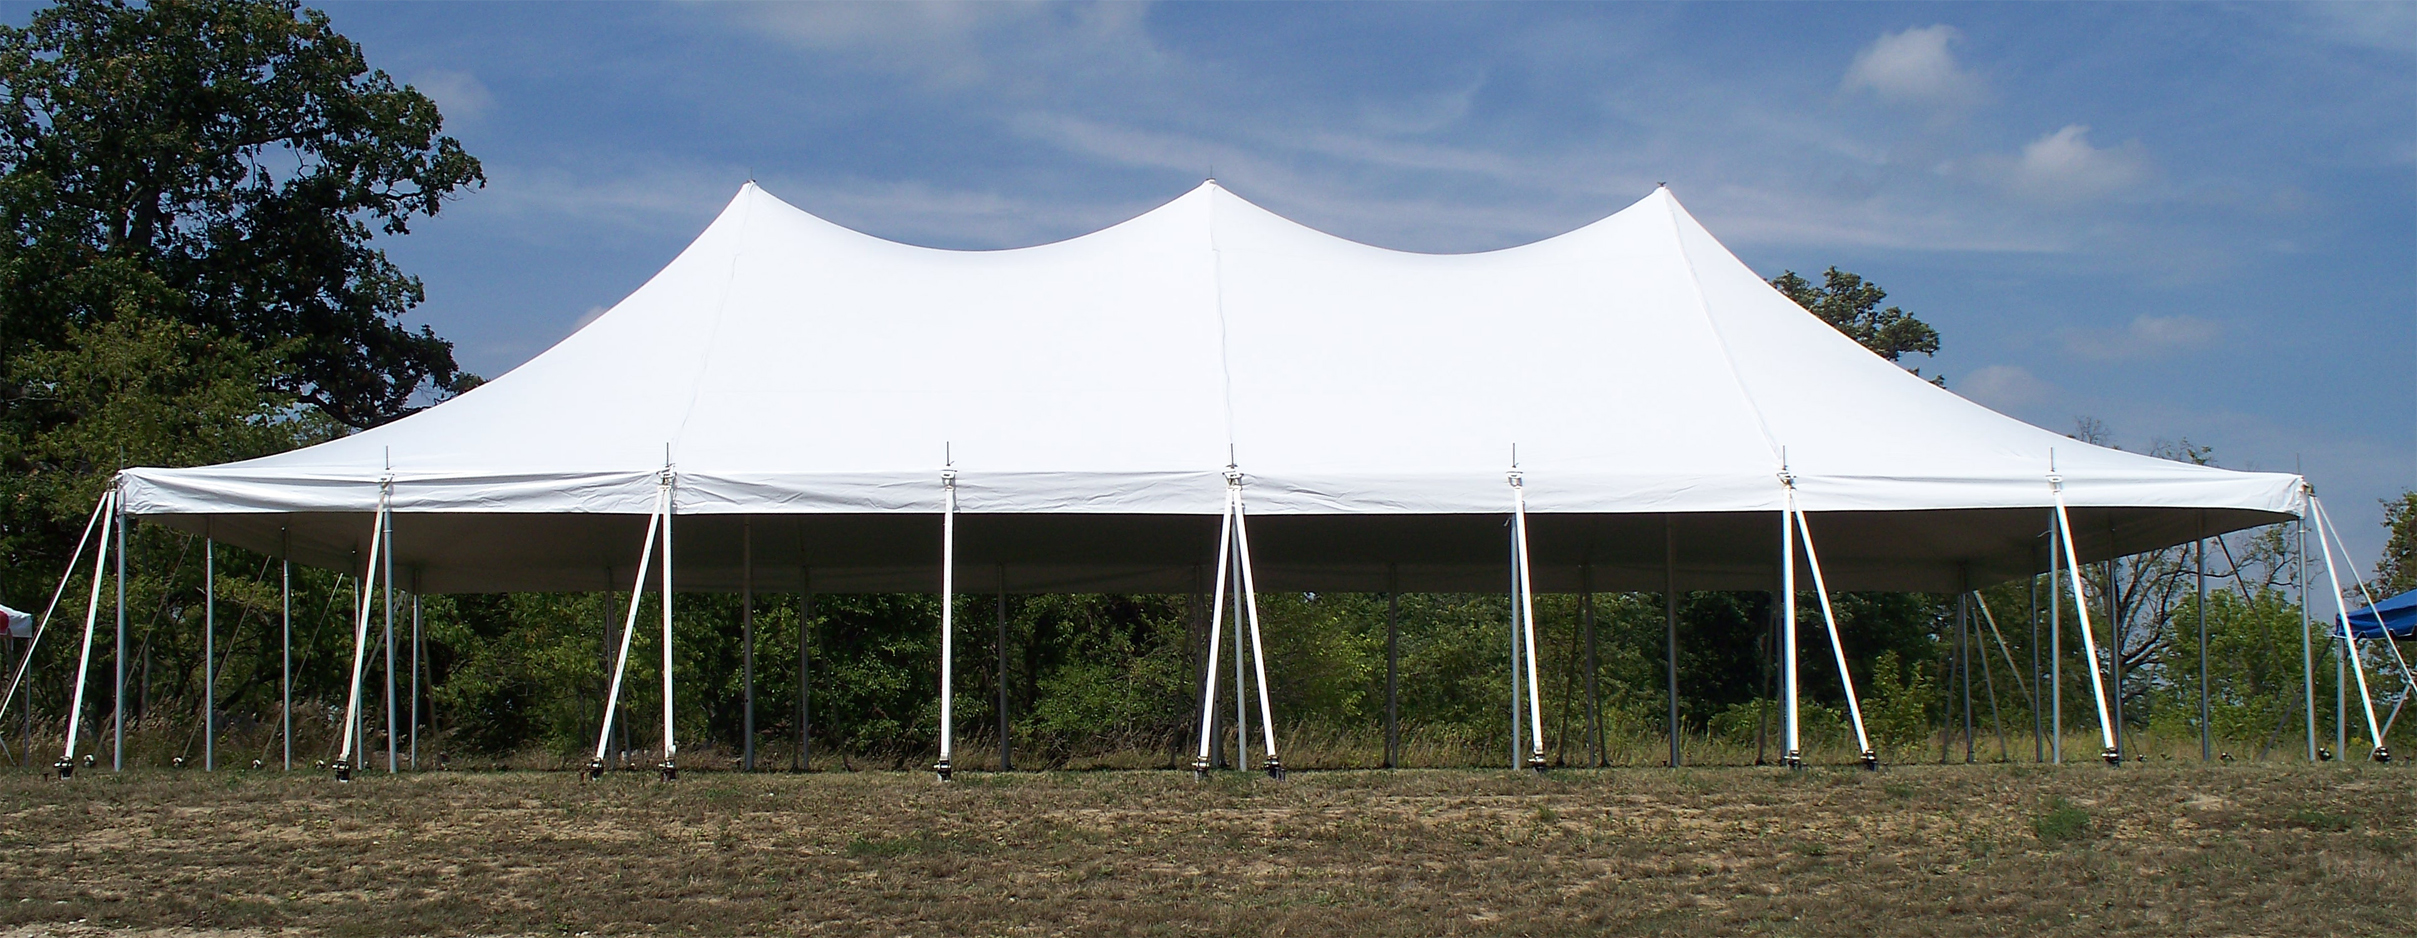 30x60 P2 Engineered Pole Tent.jpg